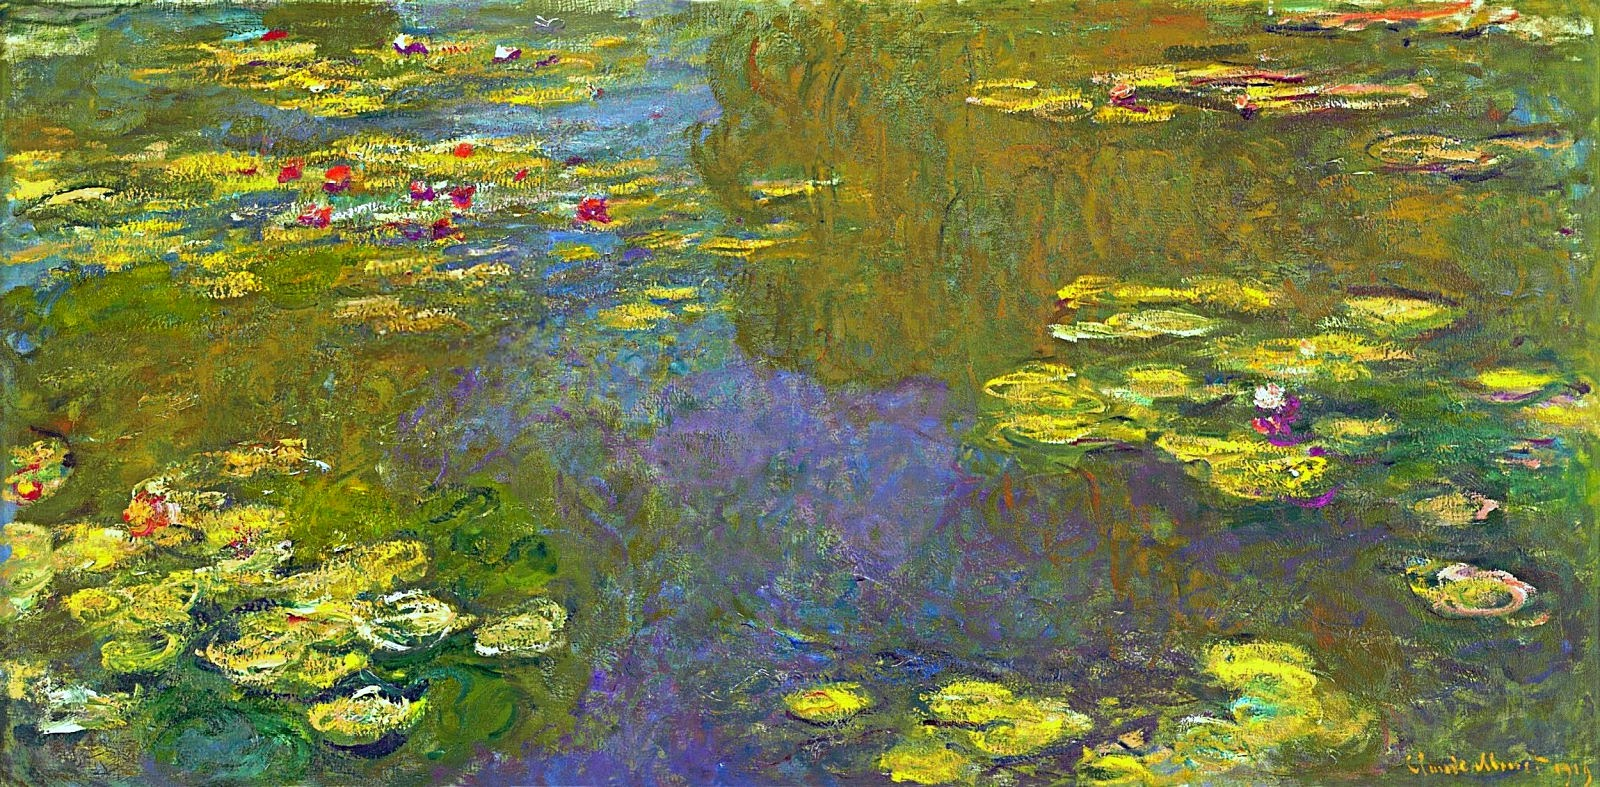 ART & ARTISTS: Claude Monet - part 24 1897 - 1922 Water Lilies